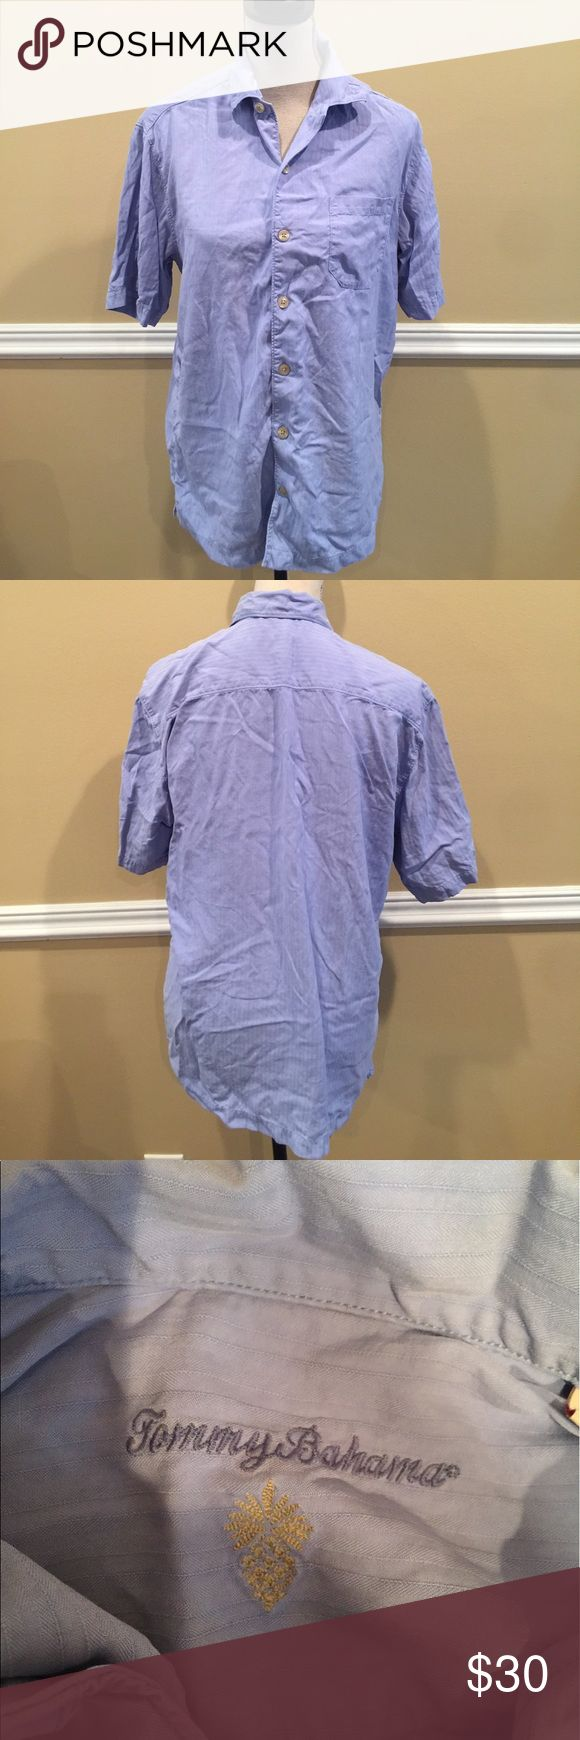 Tommy Bahama Men's Shirt Size Small VERY GOOD CONDITION!!!100% silk short sleeve button down. Size Small.🎈Make an offer 🎈accepts most offers Tommy Bahama Shirts Casual Button Down Shirts